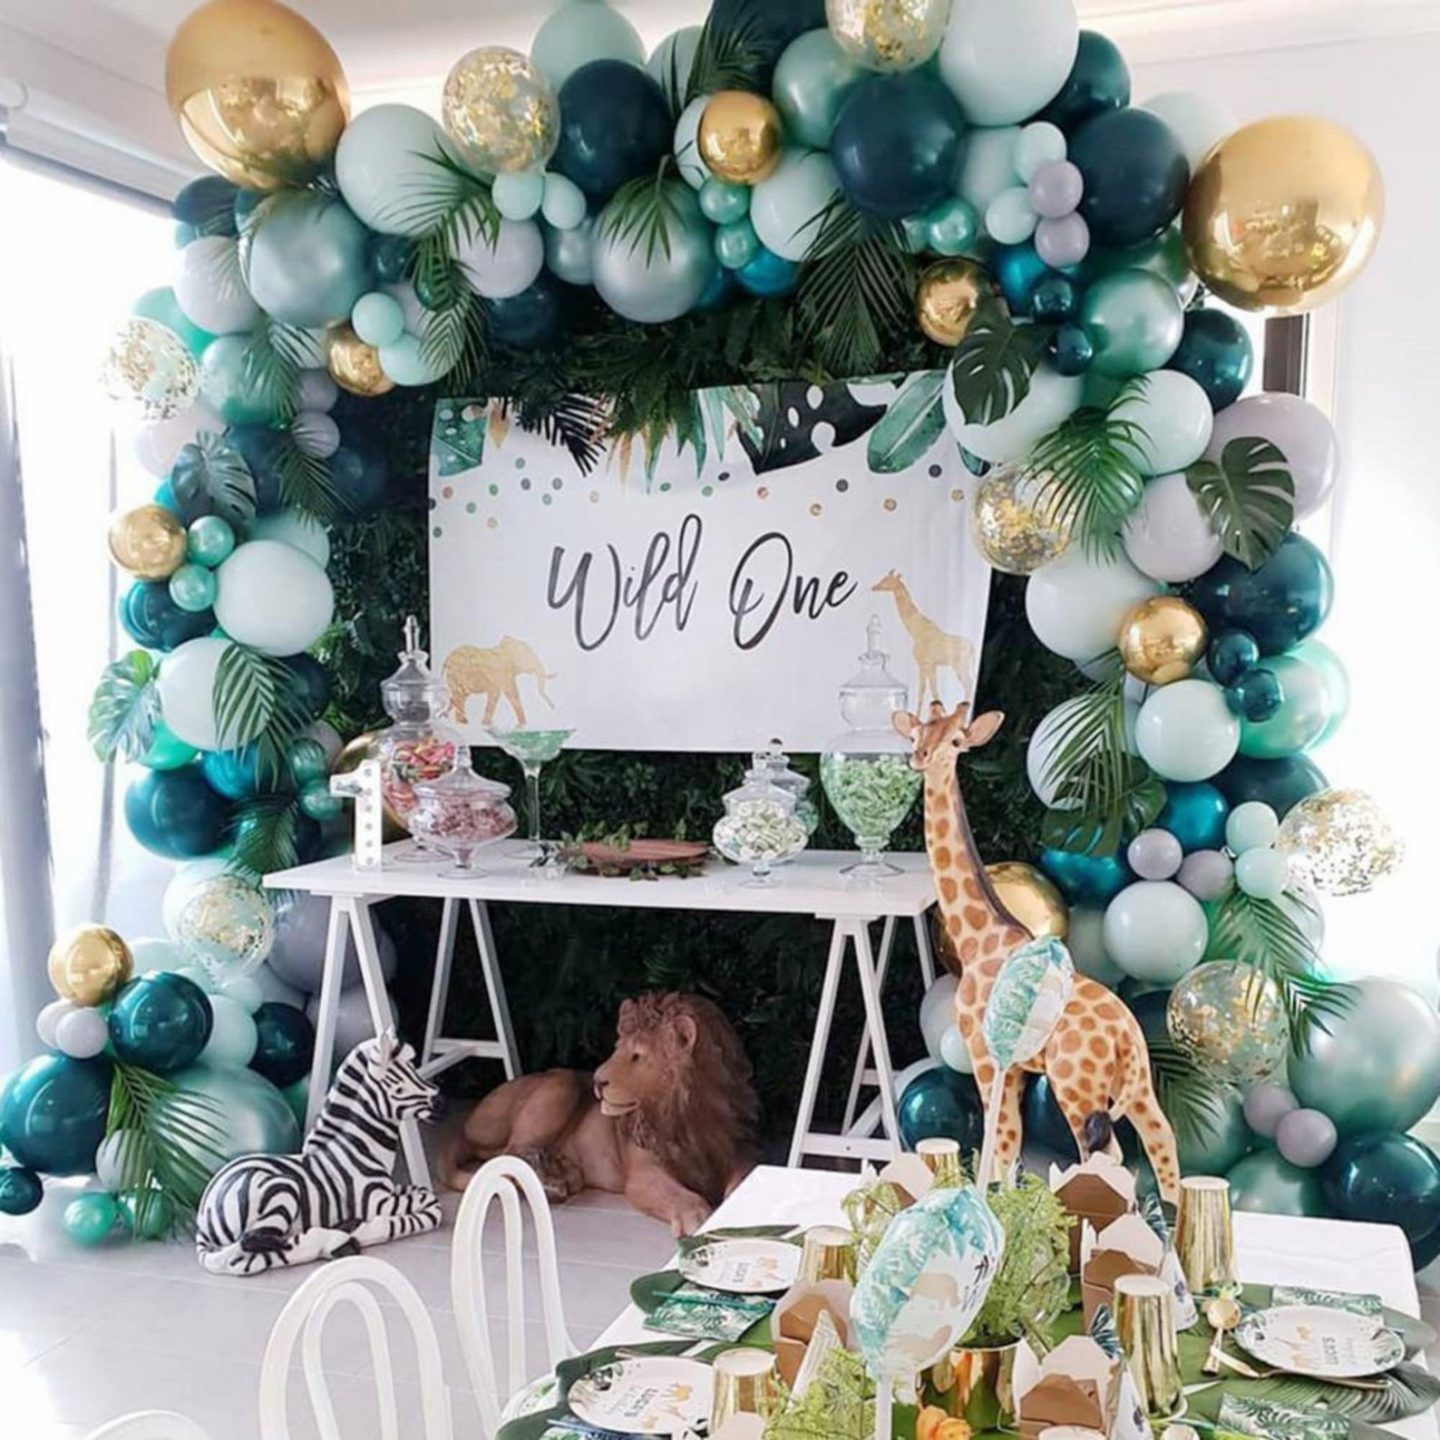 Safari birthday party decorations with green balloons